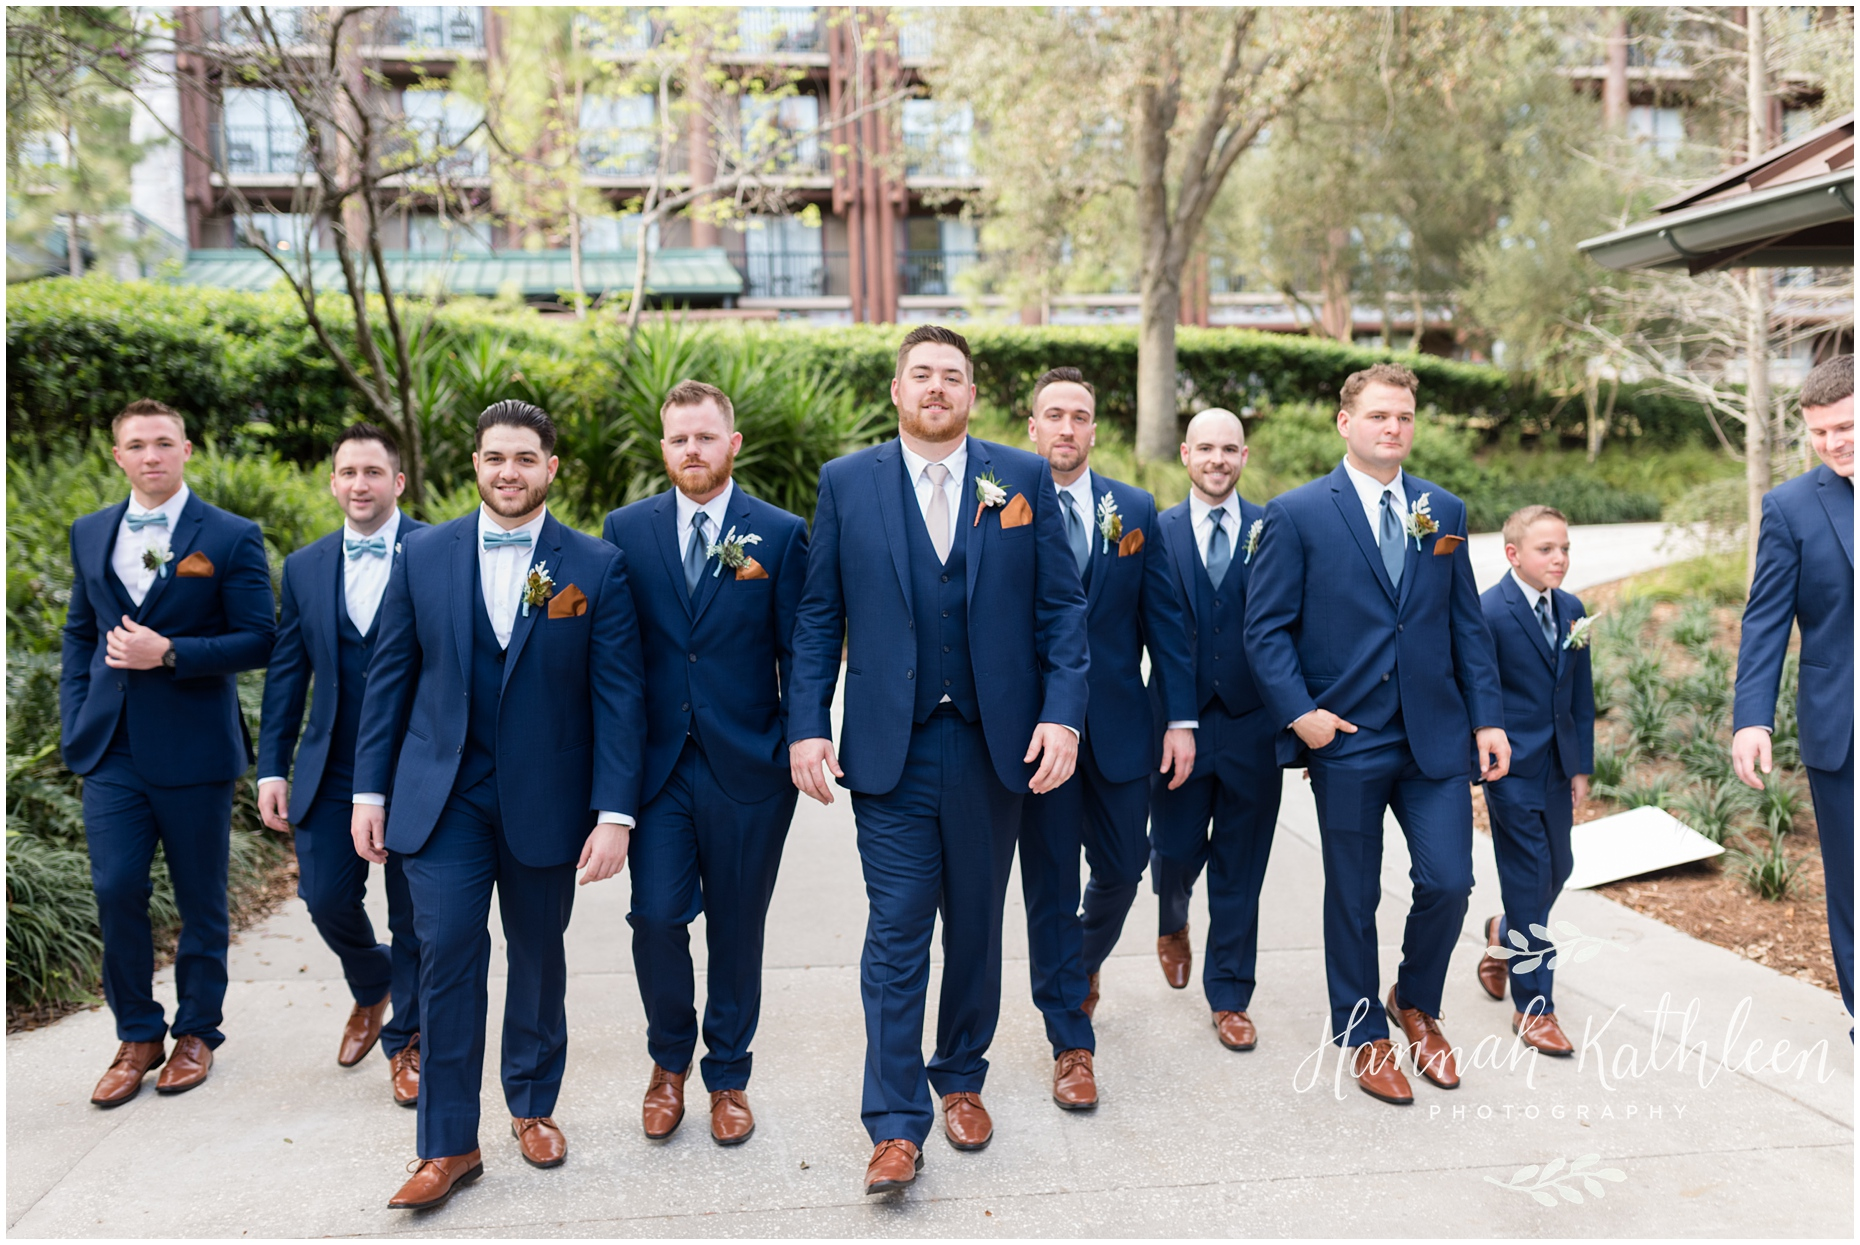 Ryan_Courtney_Disneyland_Wedding_Pavilion_Photographer